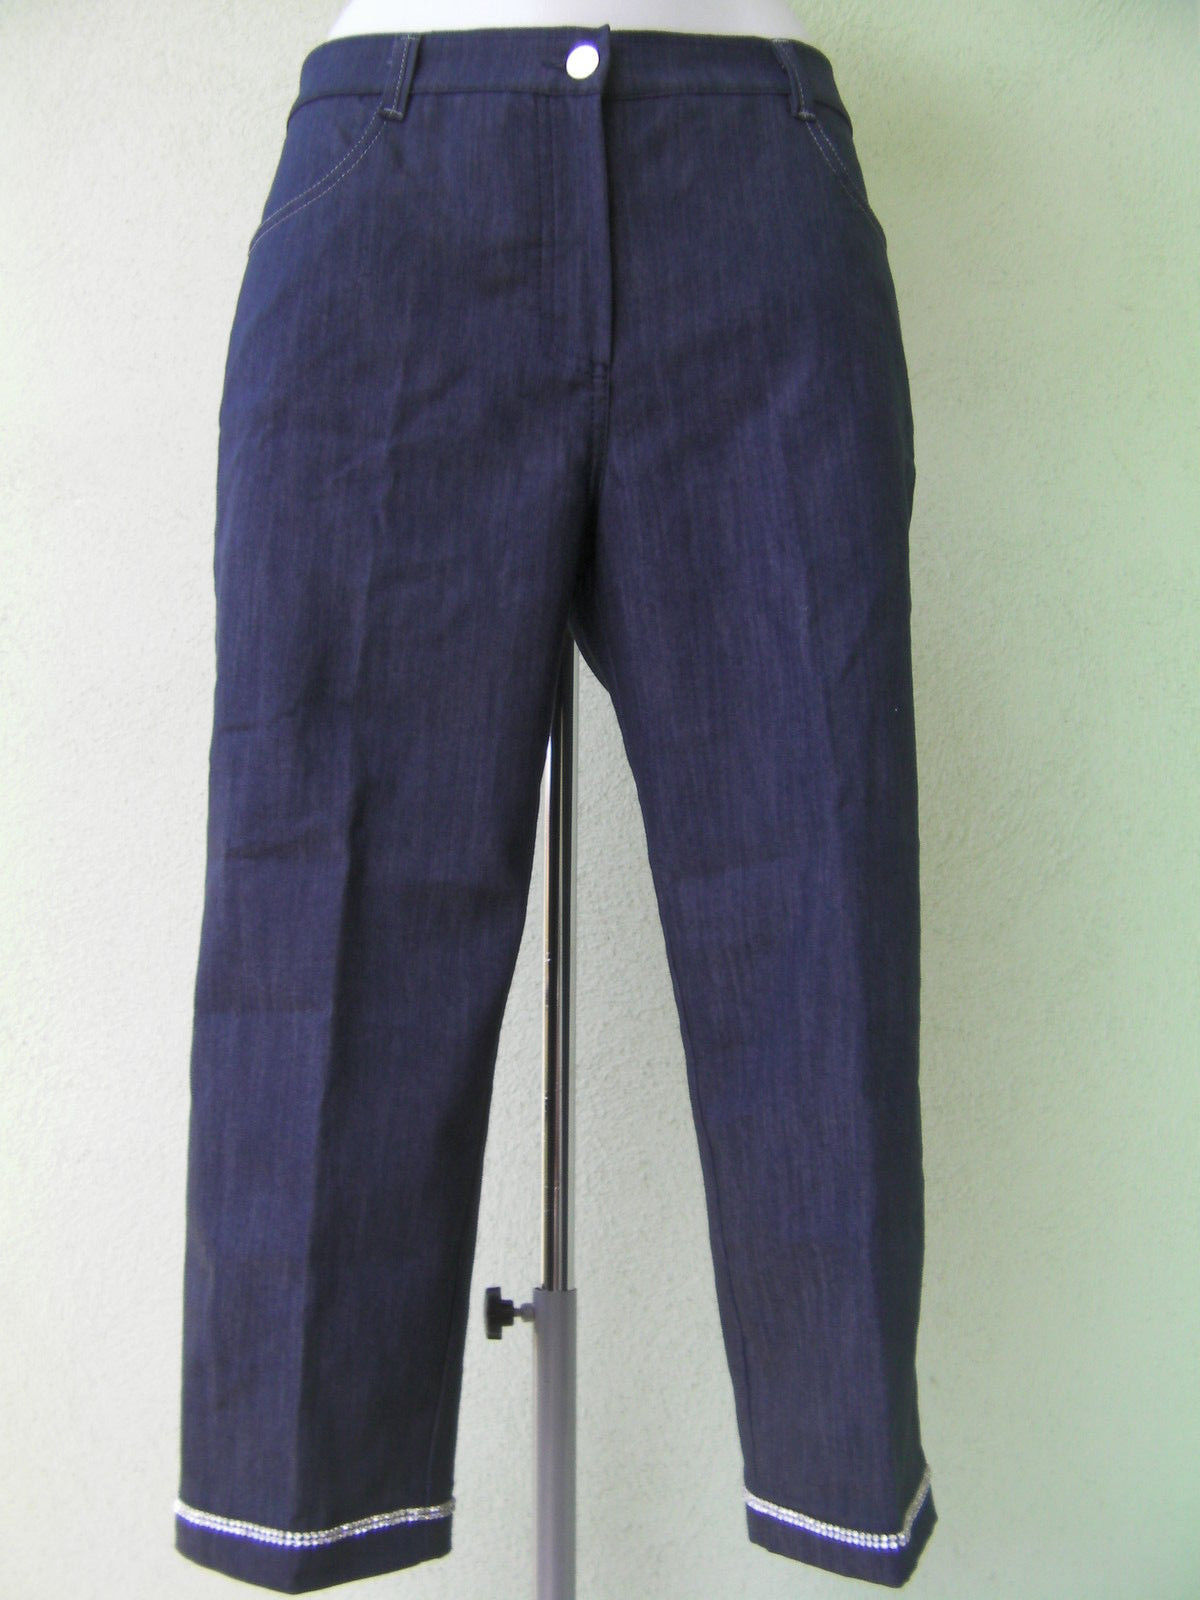 PANTALONE BERMUDA DONNA CARLA FERRONE JEANS ORIGINAL 46 PANTS WOMAN STRASSES NEW